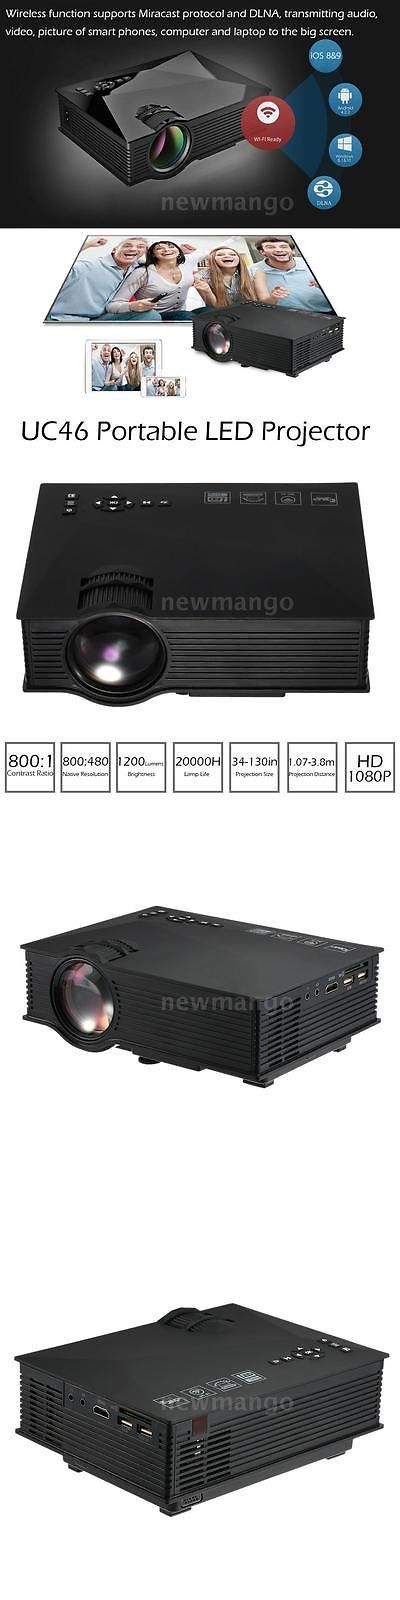 Home Theater Projectors: Uc46 Wifi 1200 Lumens Hd 1080P Led Video Projector Wifi Home Theater Tv Usb Vga -> BUY IT NOW ONLY: $64.55 on eBay!